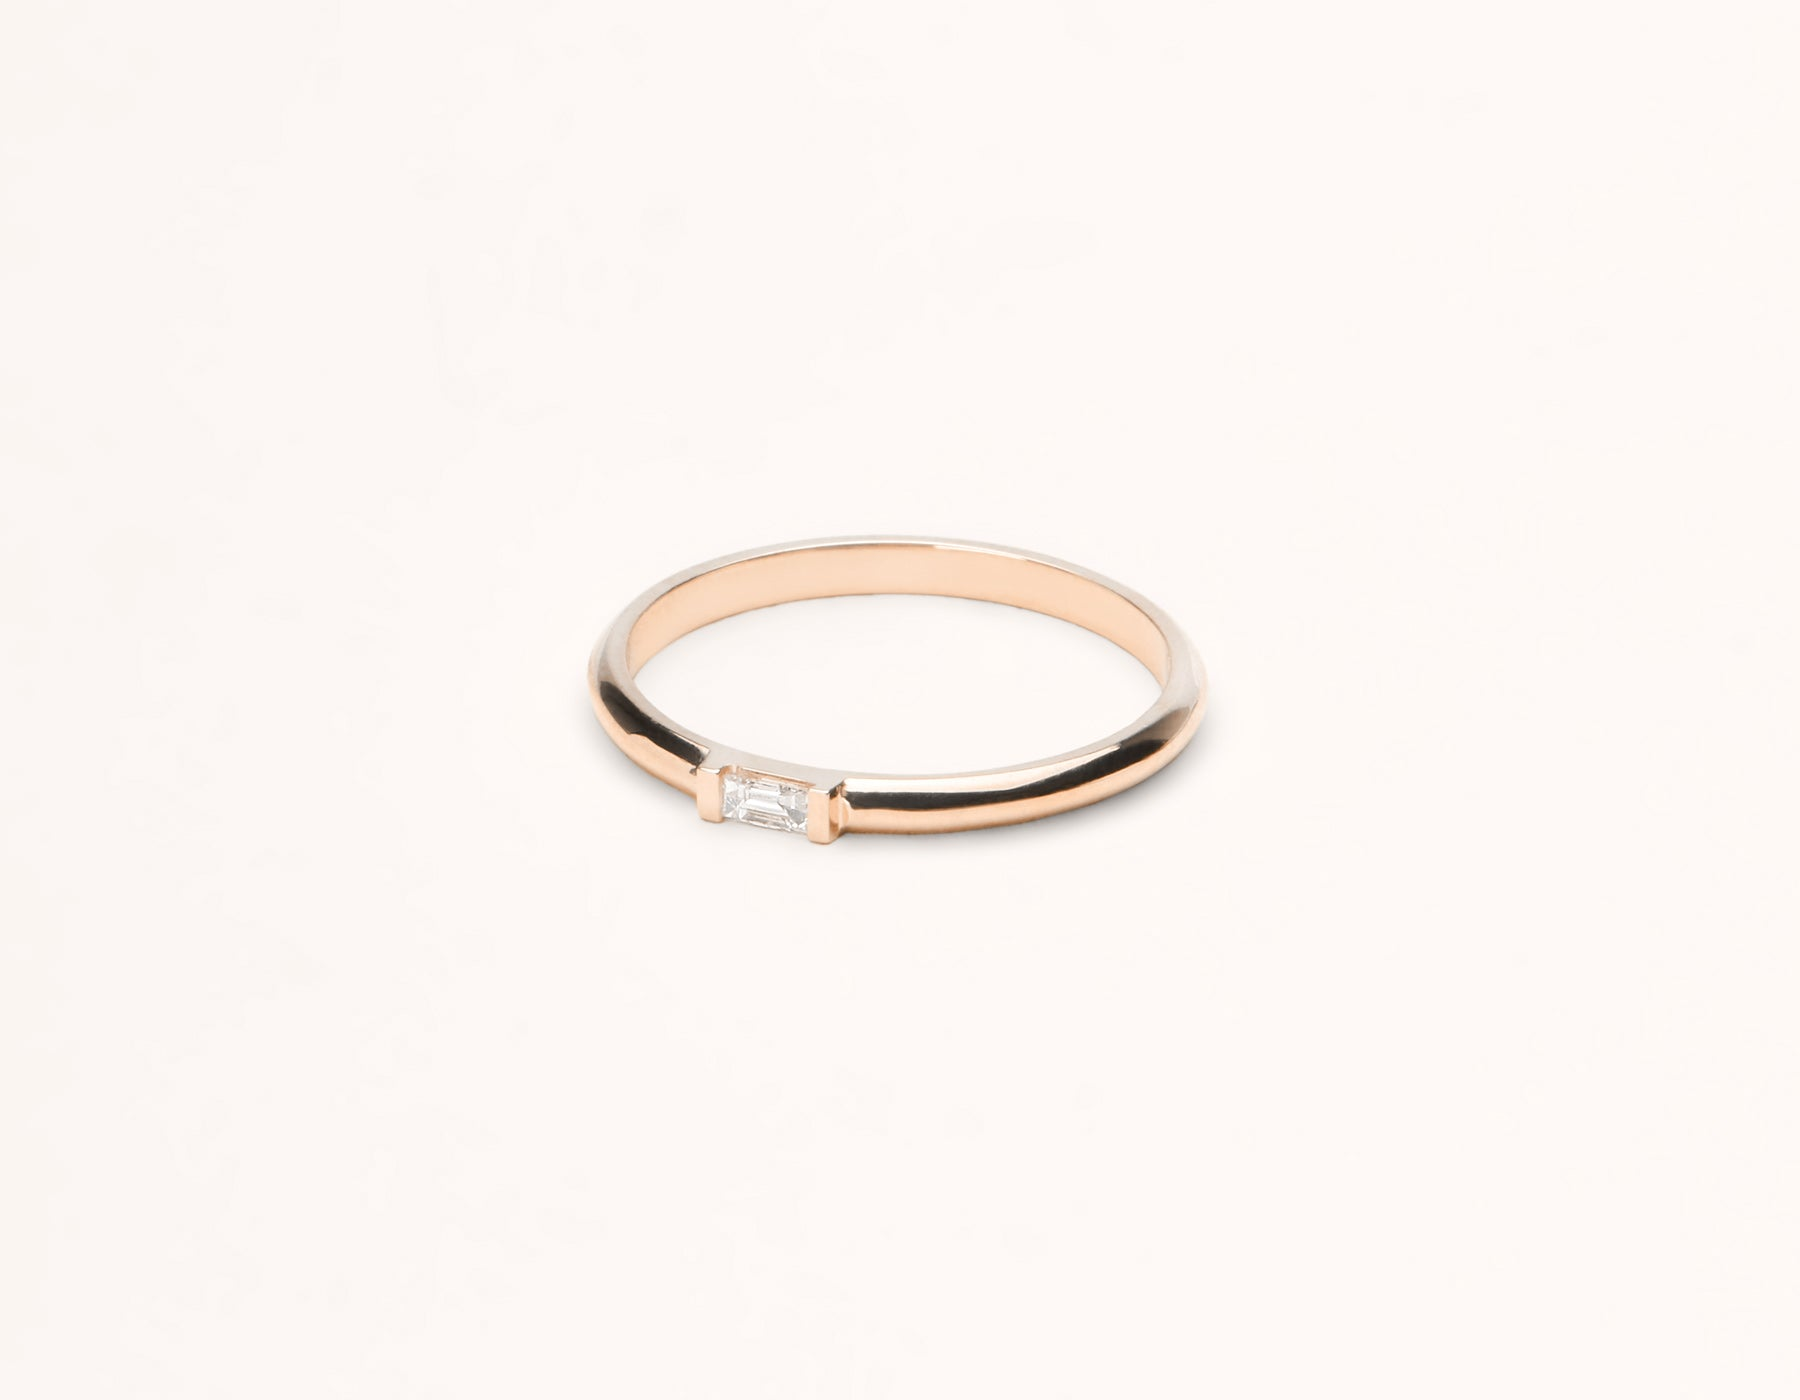 Sleek Minimalist 14k solid gold Baguette Diamond Ring with rounded band by Vrai and Oro, 14K Rose Gold